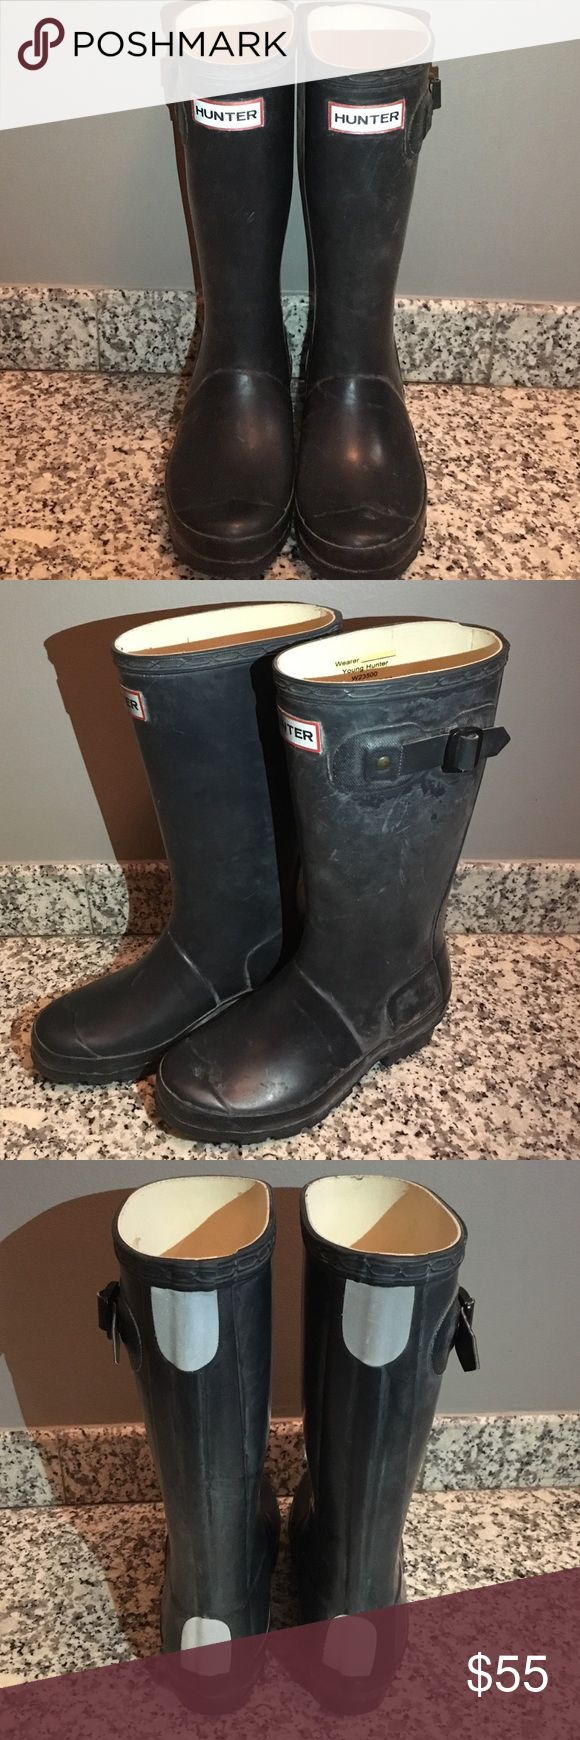 ☔️💦 KIDS HUNTER RAIN BOOTS 💦☔️ ☔️💦 Kids HUNTER Rain Boots 💦☔️ Size 2. Matte Navy. Reflectors on Back. Only wore a few times. Like New. Unisex Hunter Boots Shoes Rain & Snow Boots